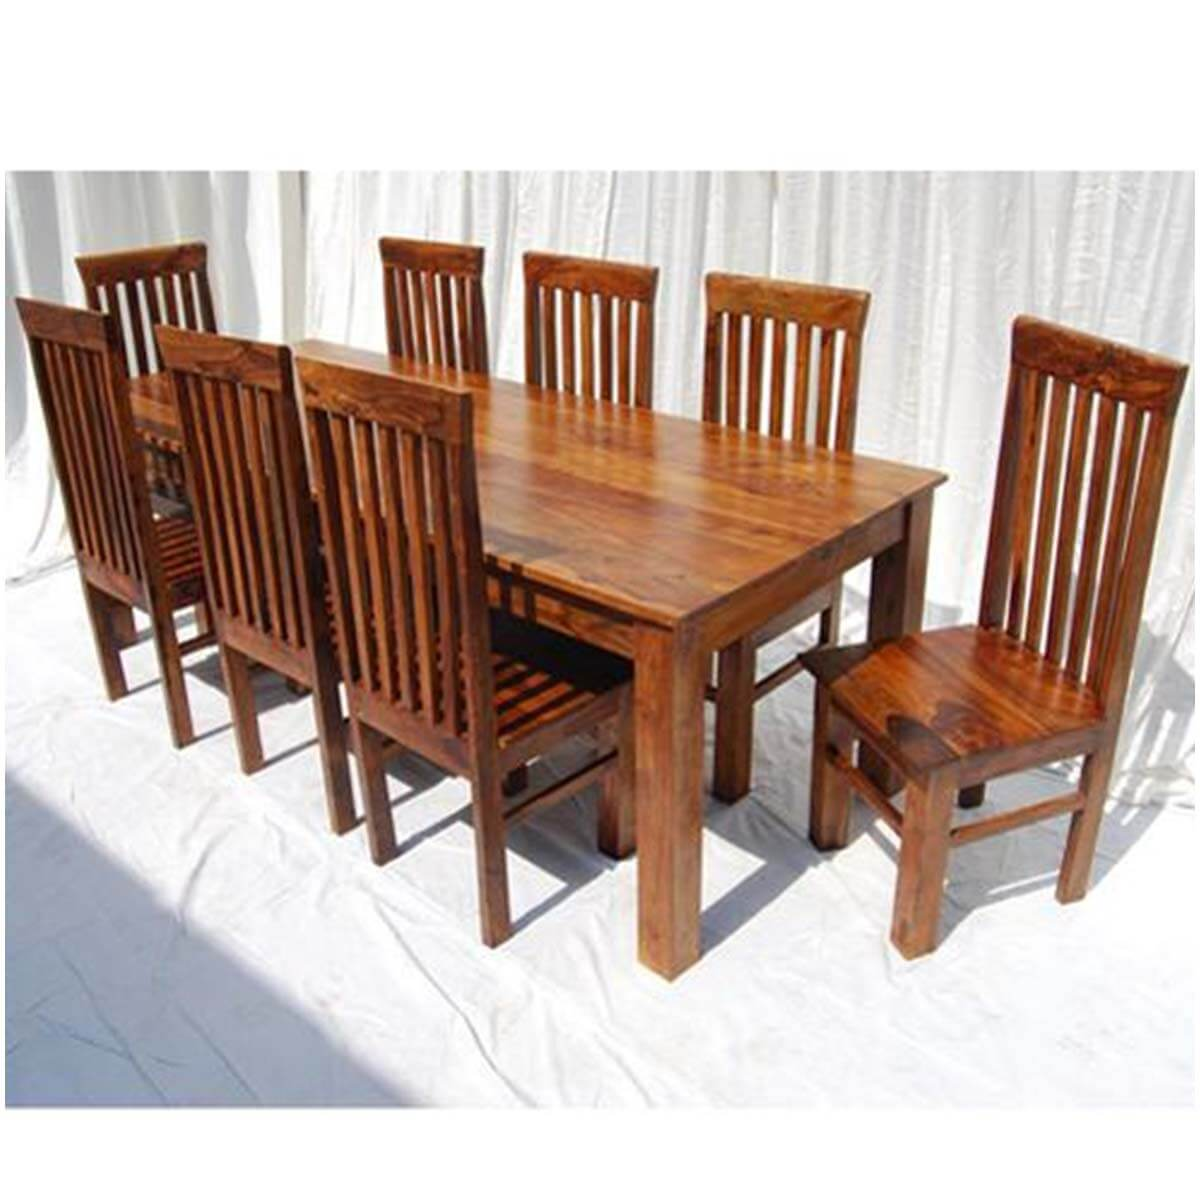 Classic Rustic Solid Wood Cariboo Dining Table : 17733 from www.sierralivingconcepts.com size 1200 x 1200 jpeg 121kB